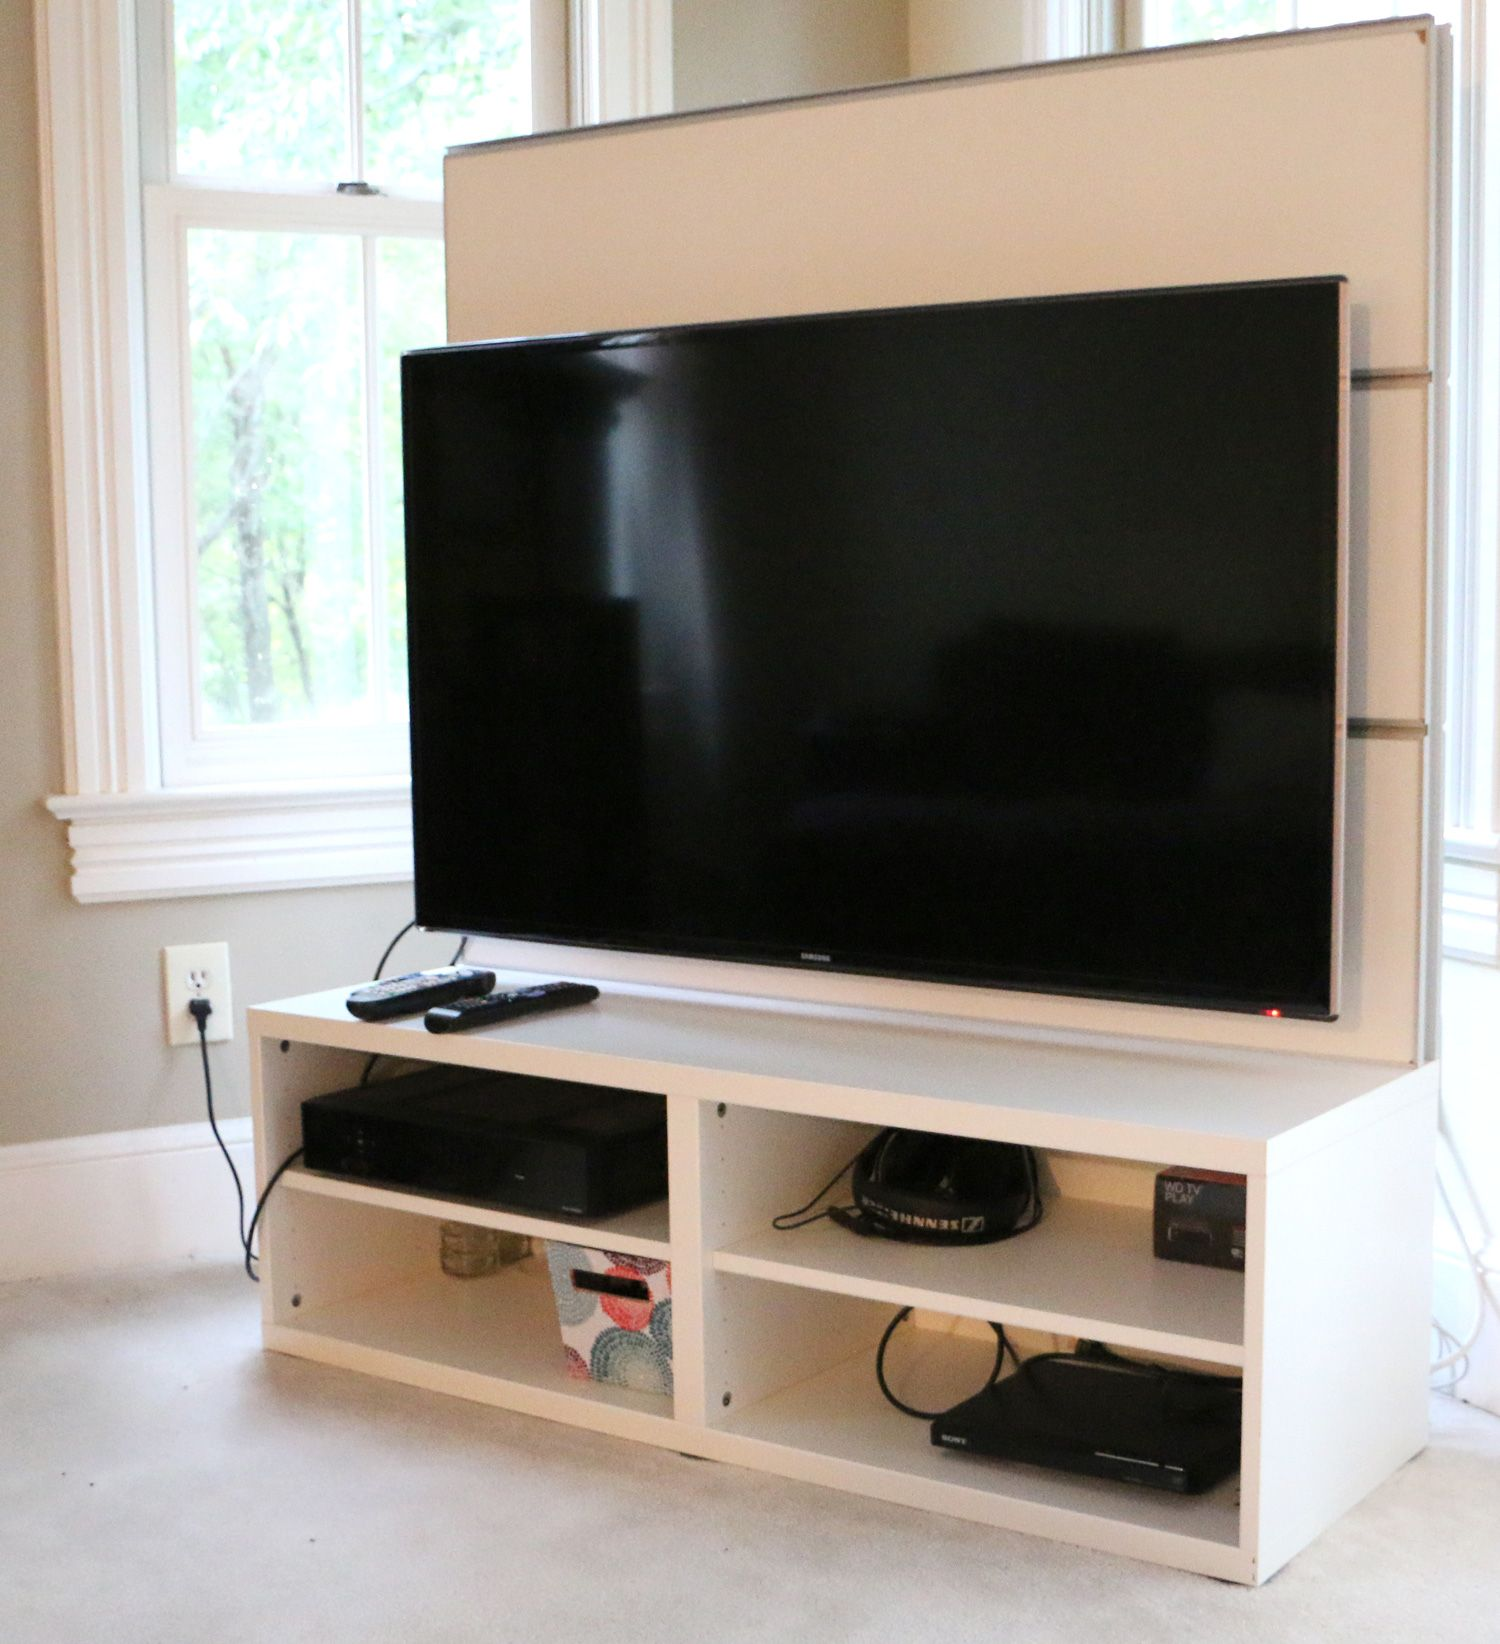 Ikea Mediawand Moving Sale Besta Framsta Tv Unit Ikea For Tv Up To 50